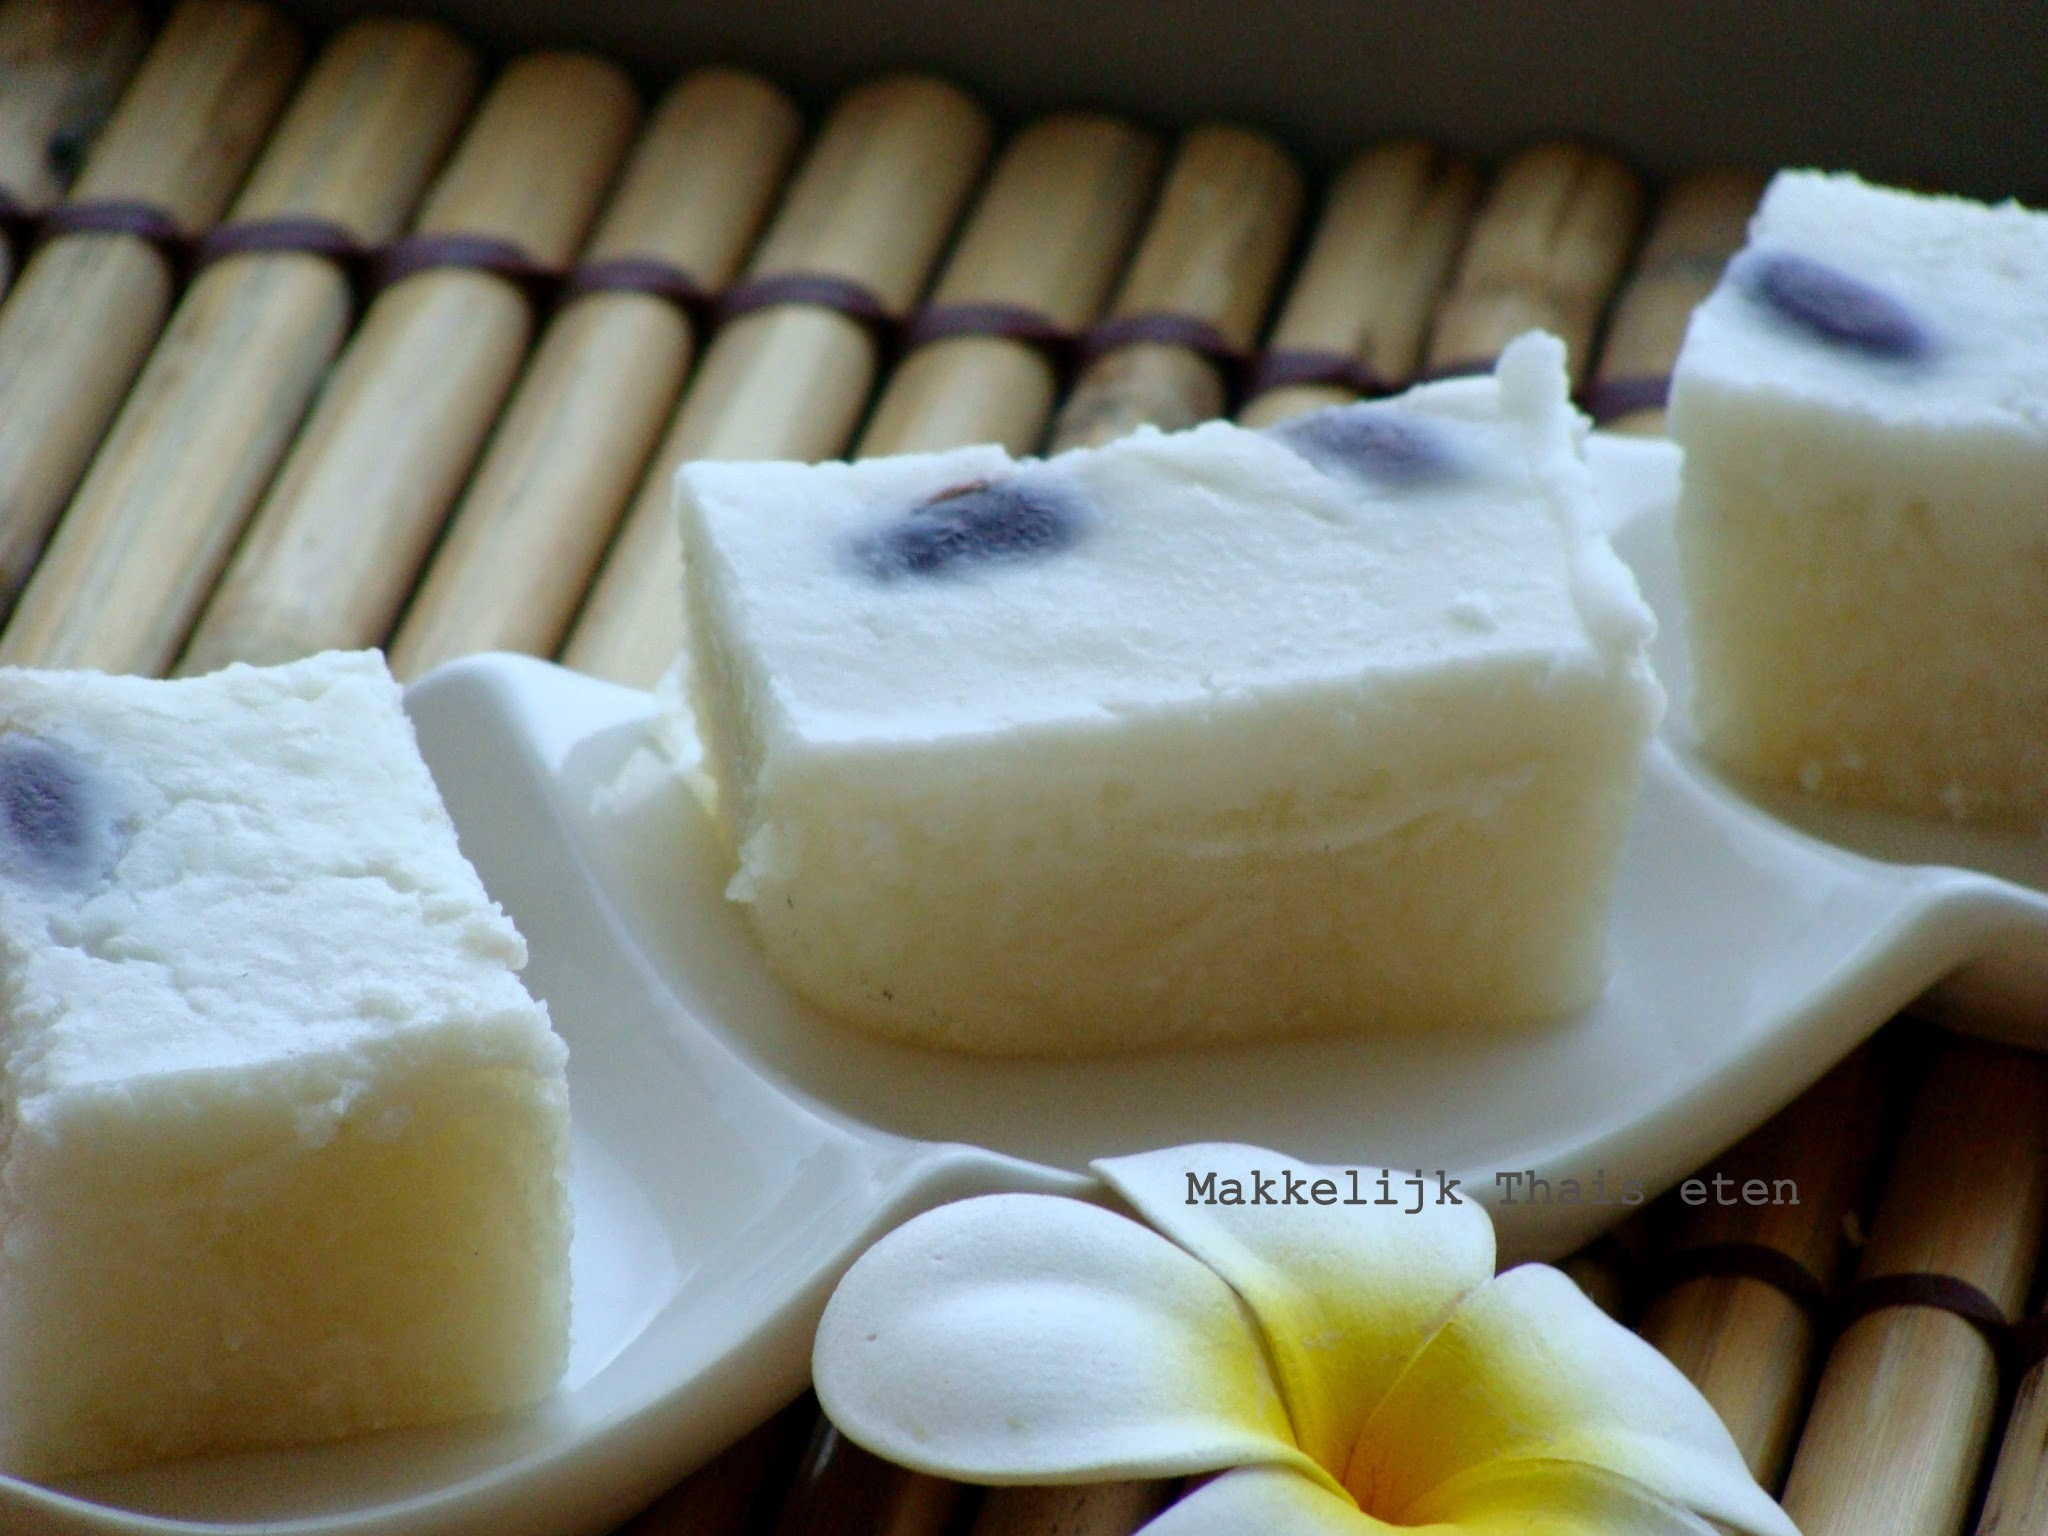 Thaise romige kokosmelk kleefrijst taart/ Thai dessert with rice and coconut milk/ สูตรข้าวเหนียวหน้านวล (ตัด)